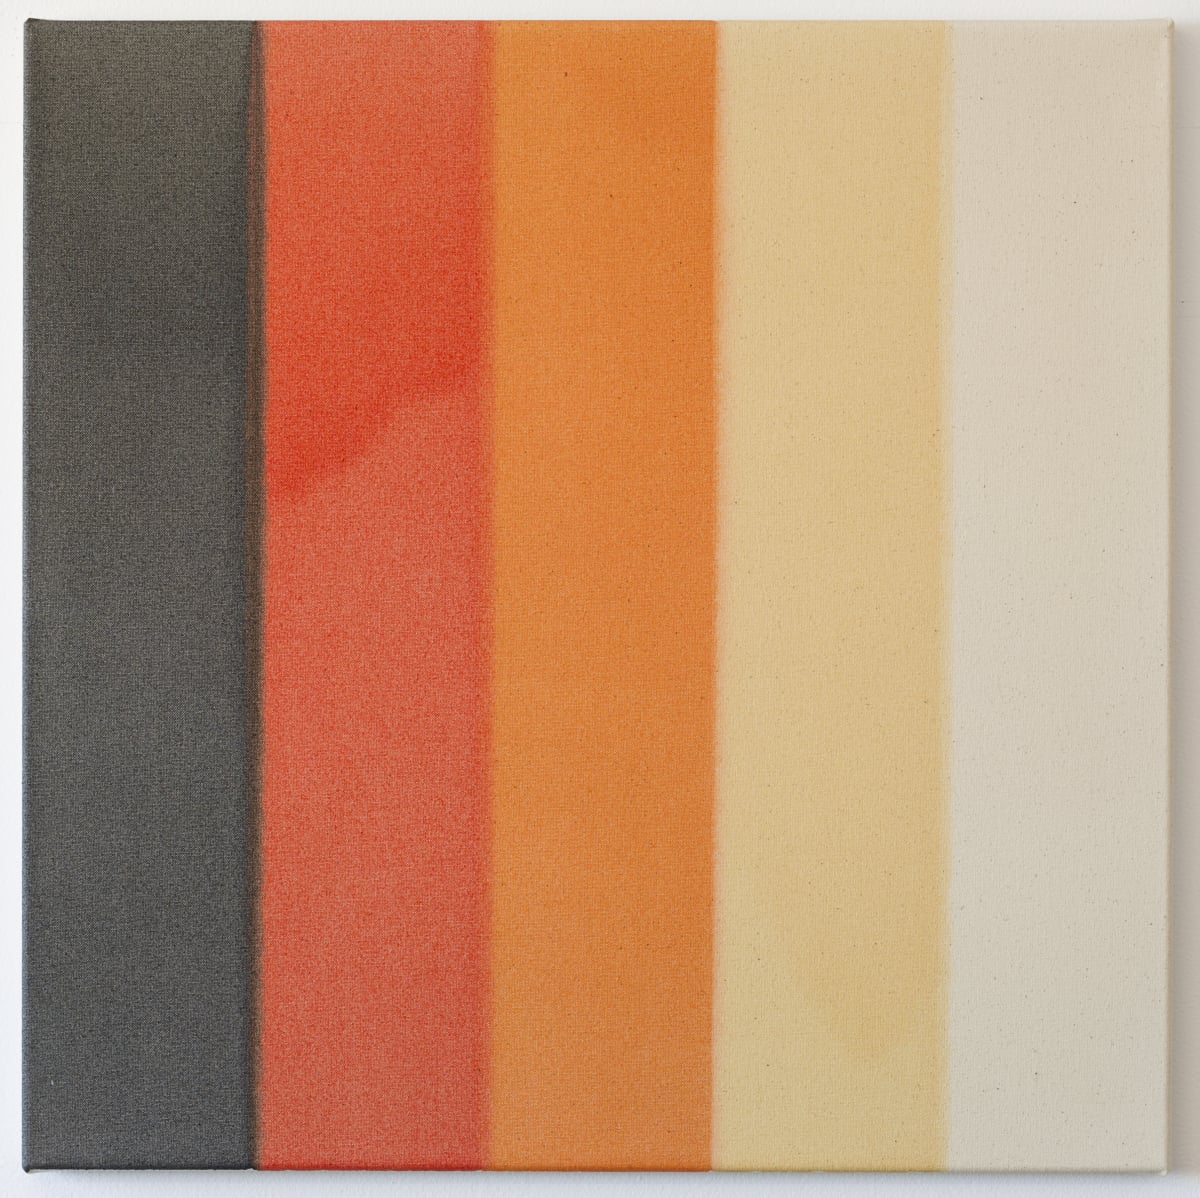 Simon Morris Colour Order 2, 2015 Acrylic on canvas 30.5 x 30.5 in 77.5 x 77.5 cm